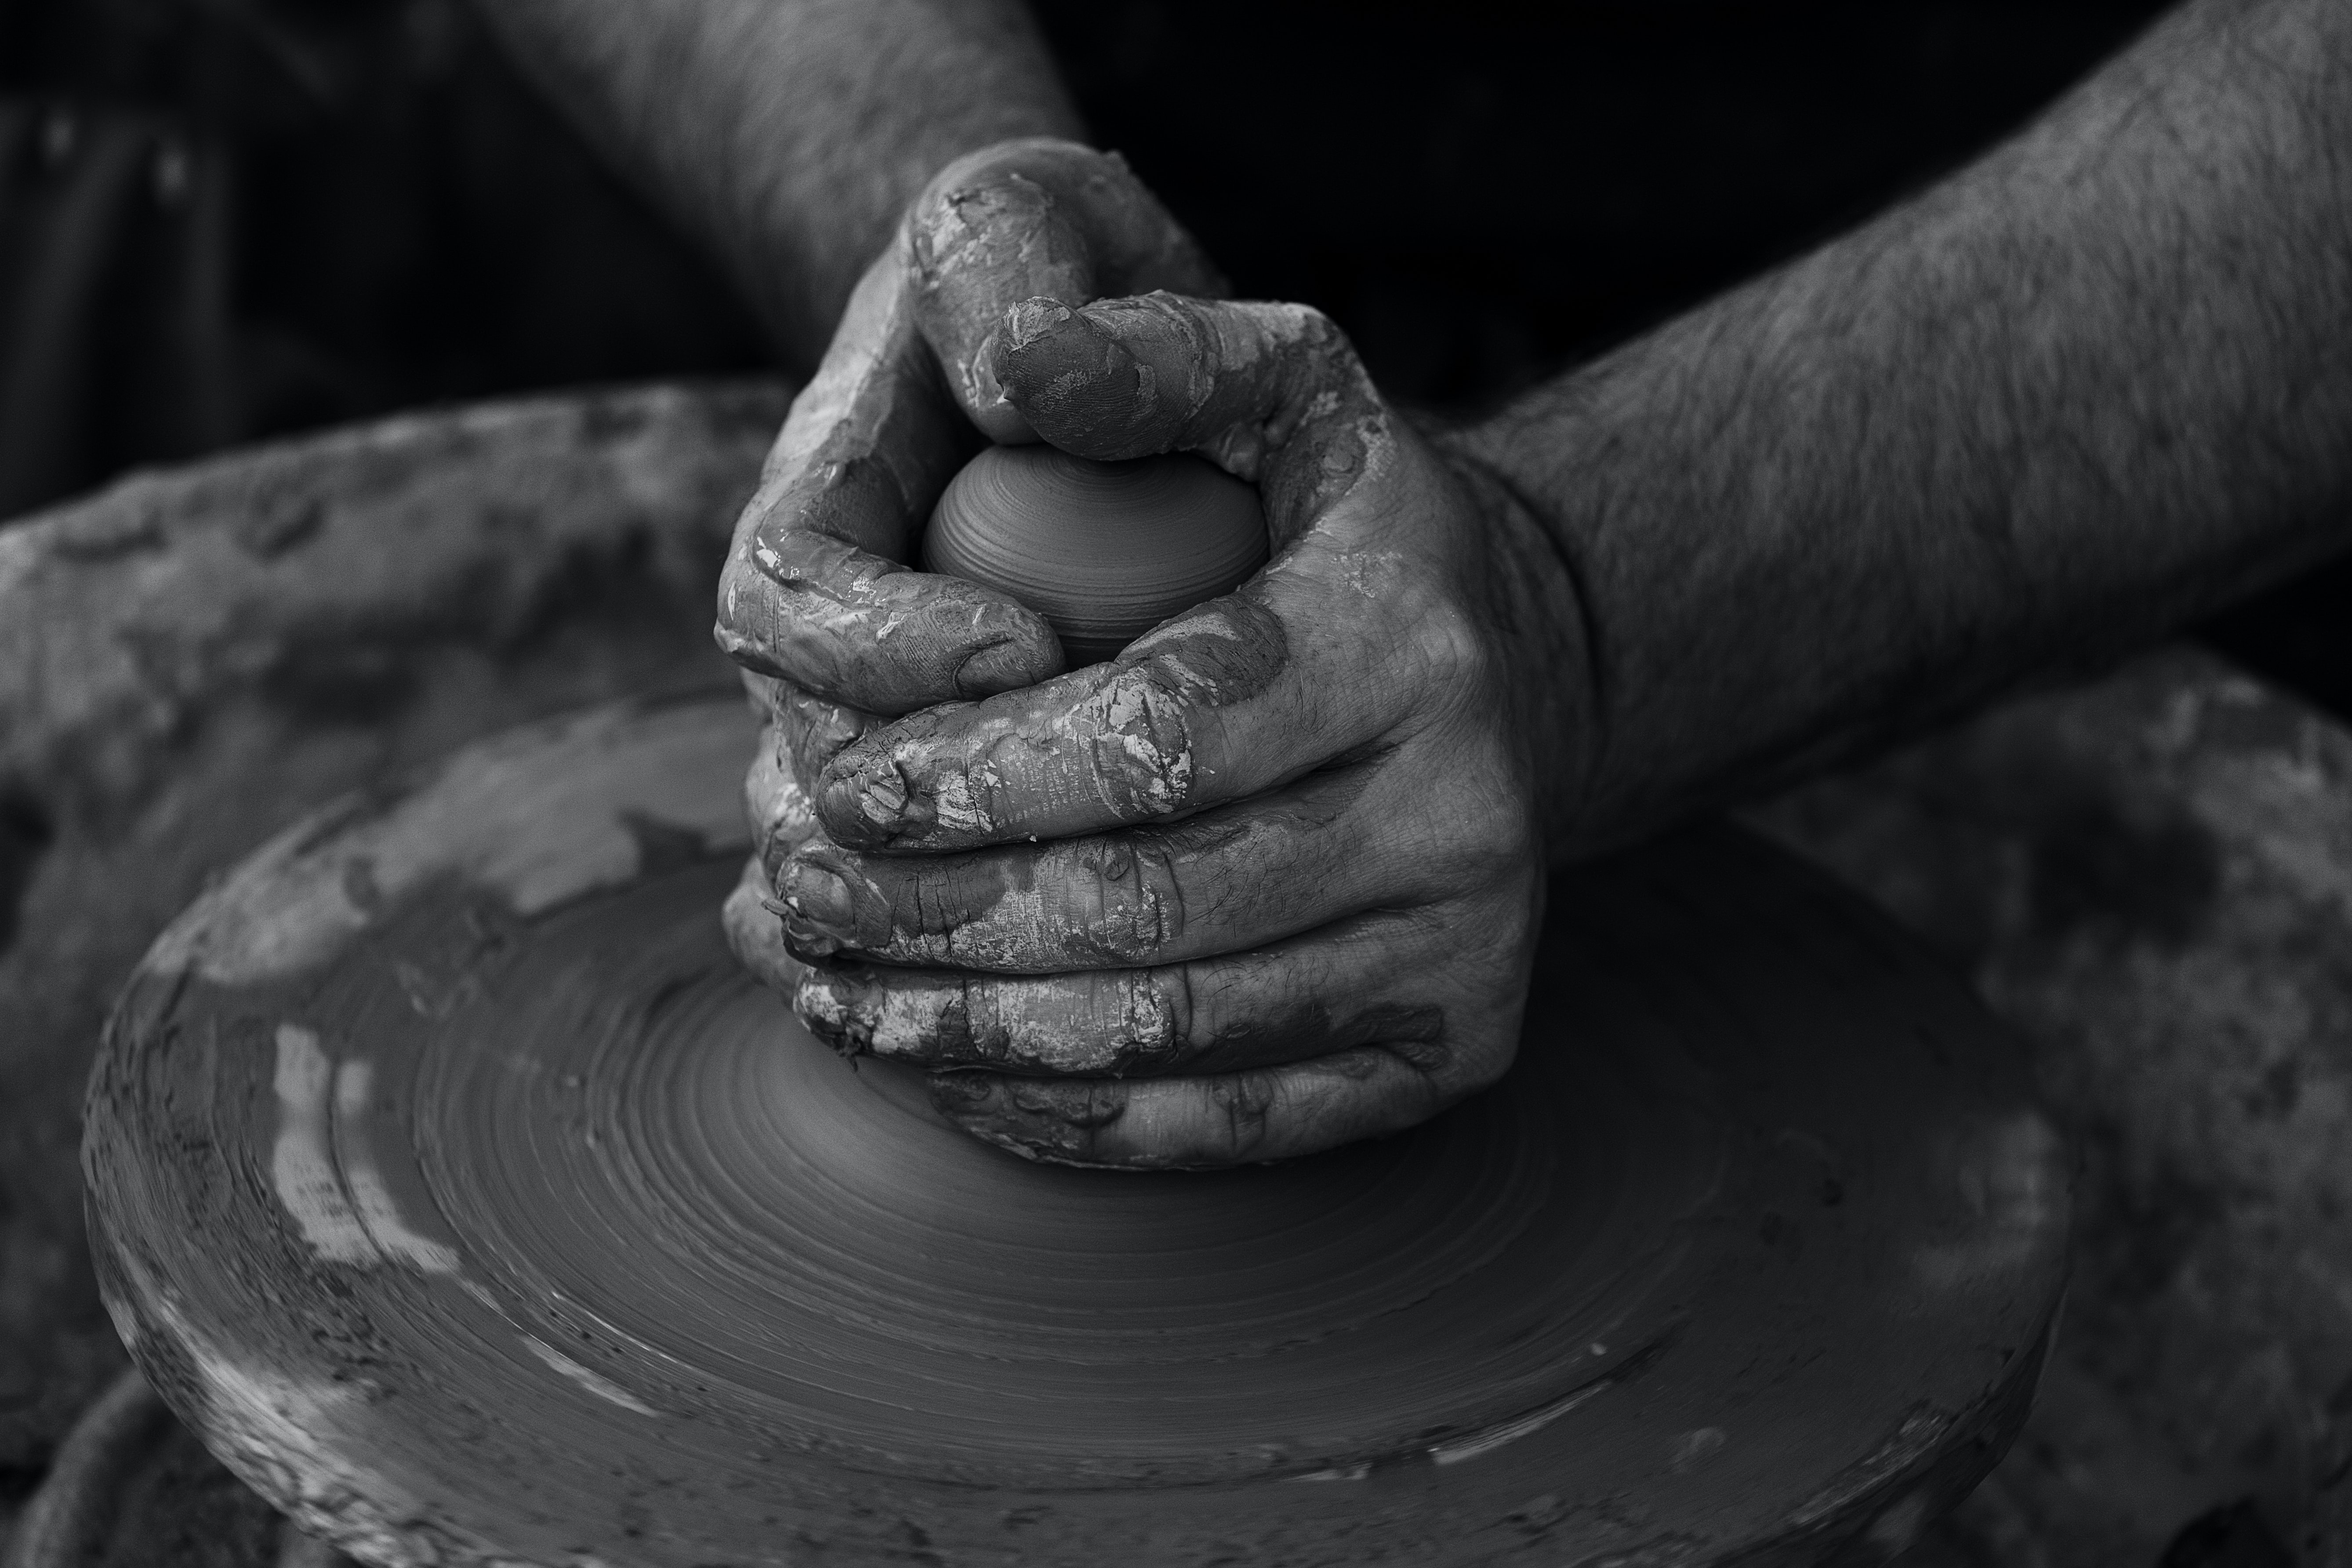 A man molding clay on a pottery wheel